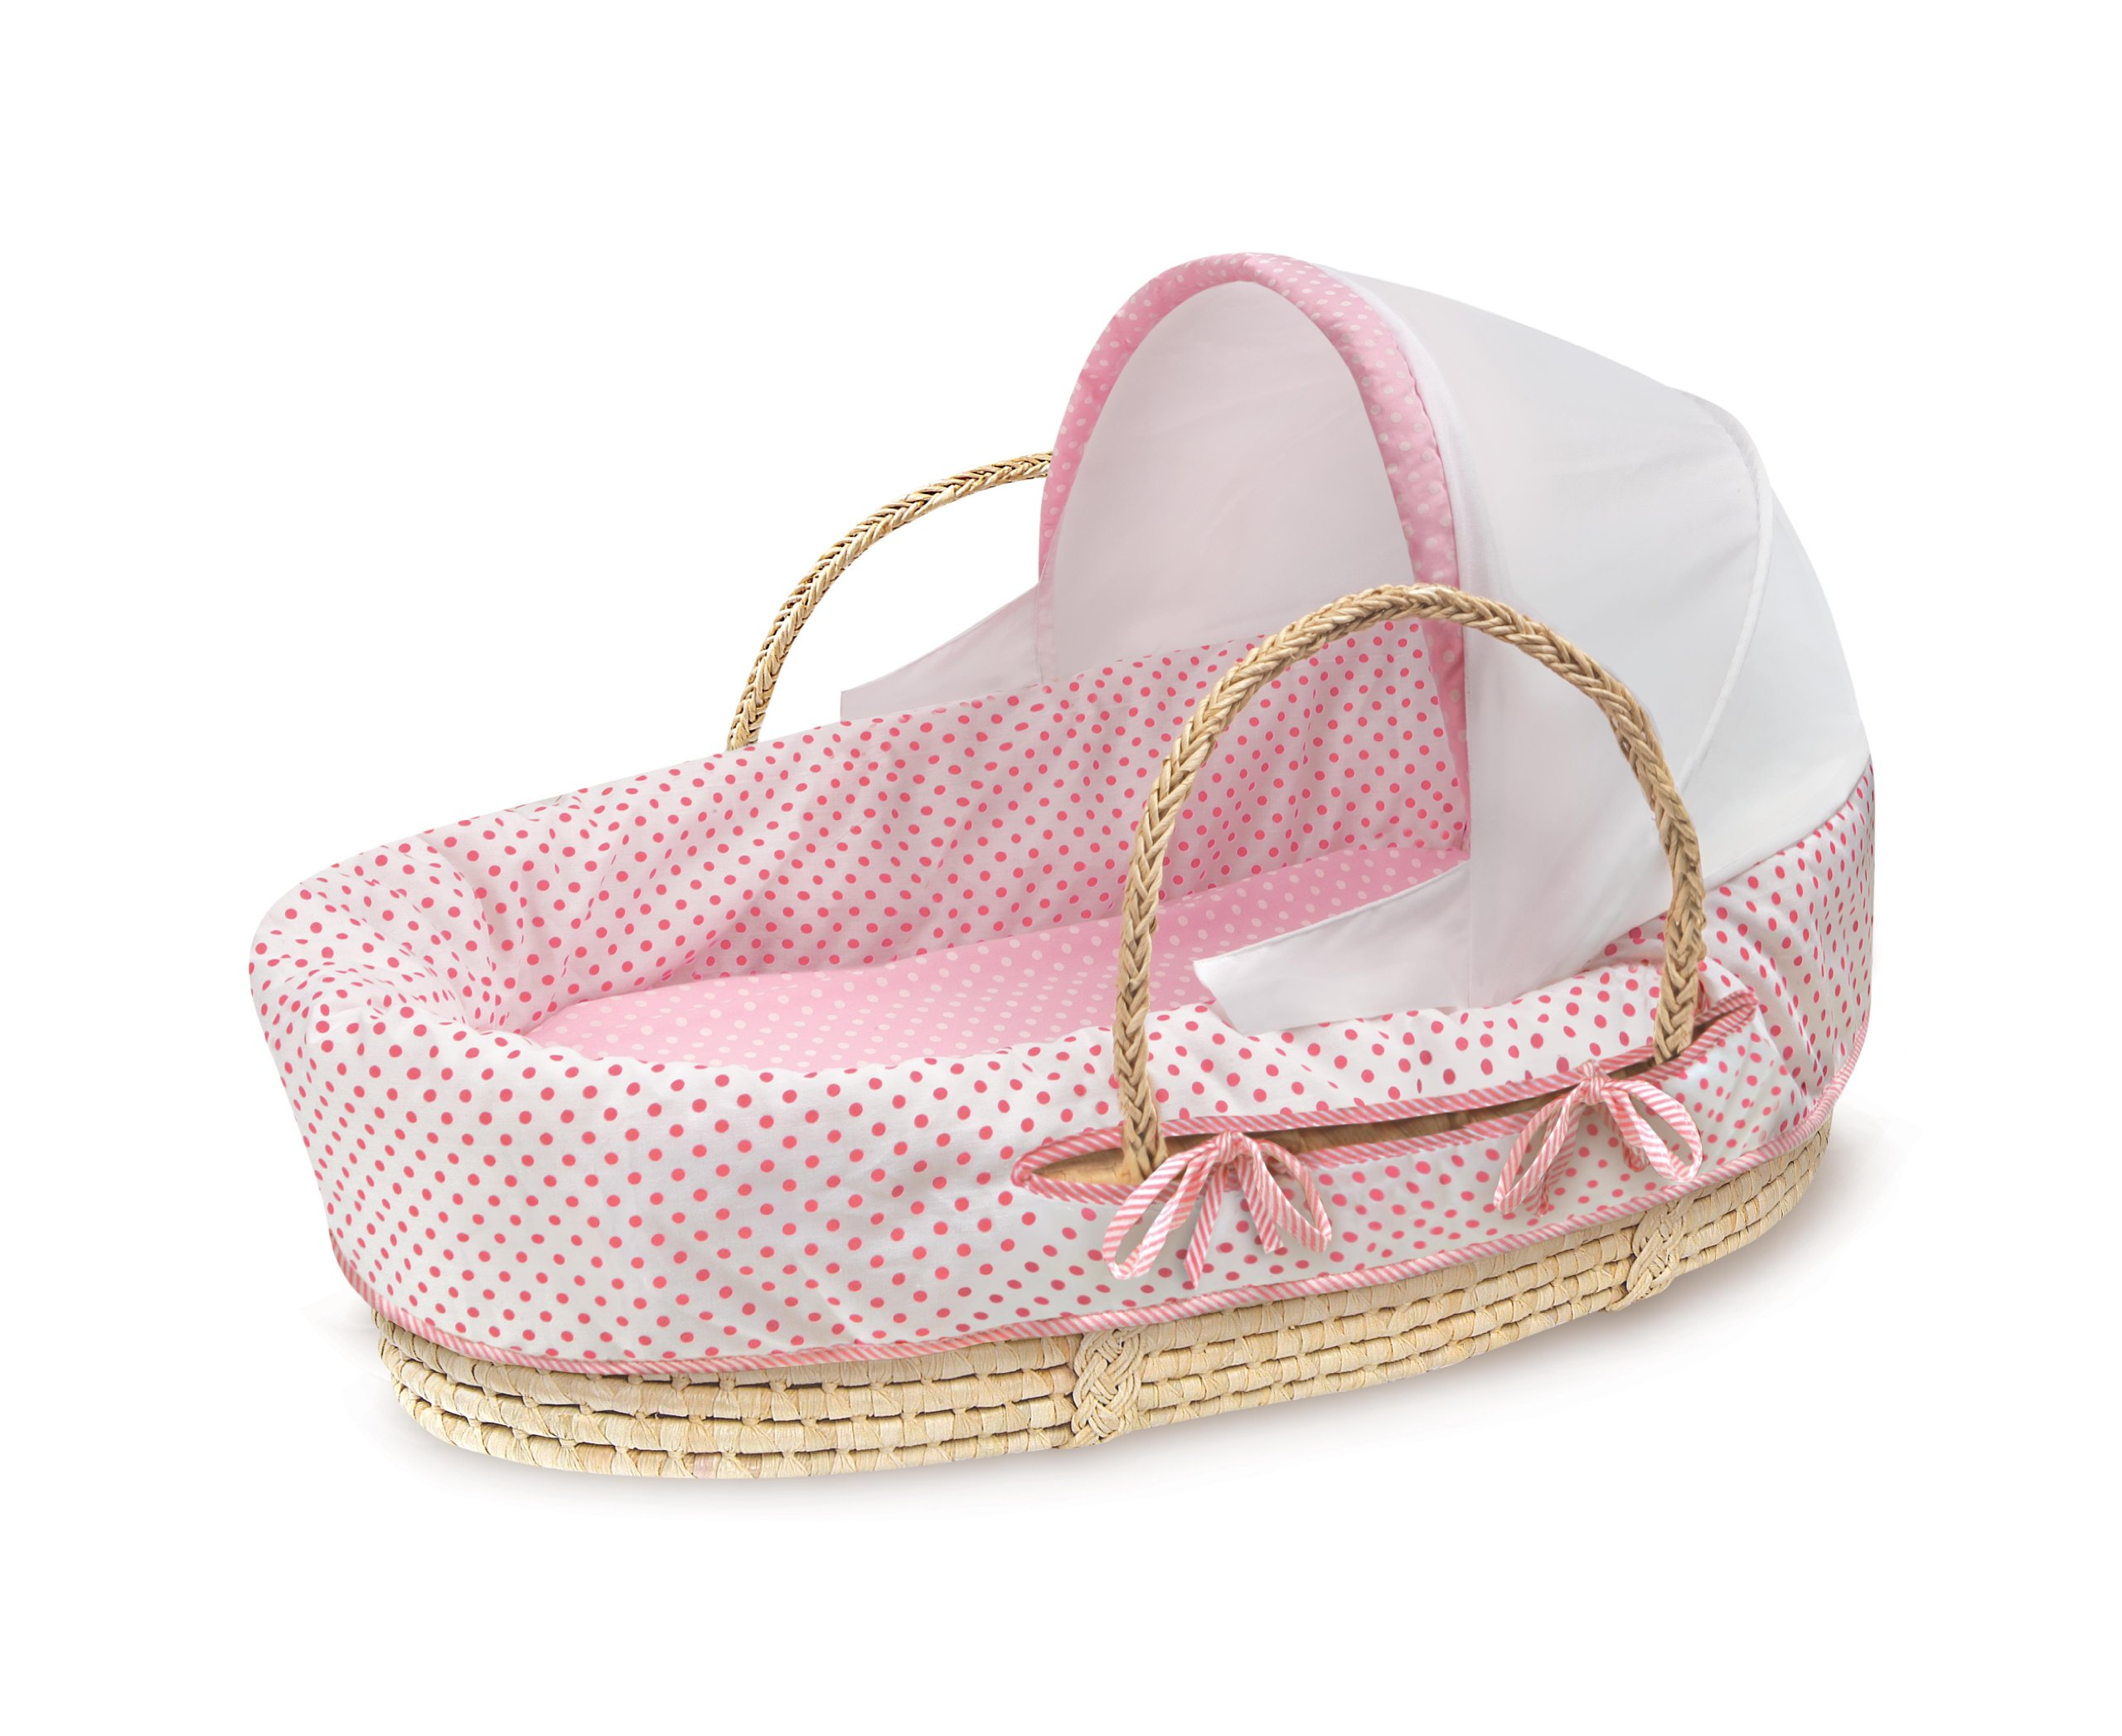 Baby Moses Basket with Canopy, Bedding, and Pad by Badger Basket